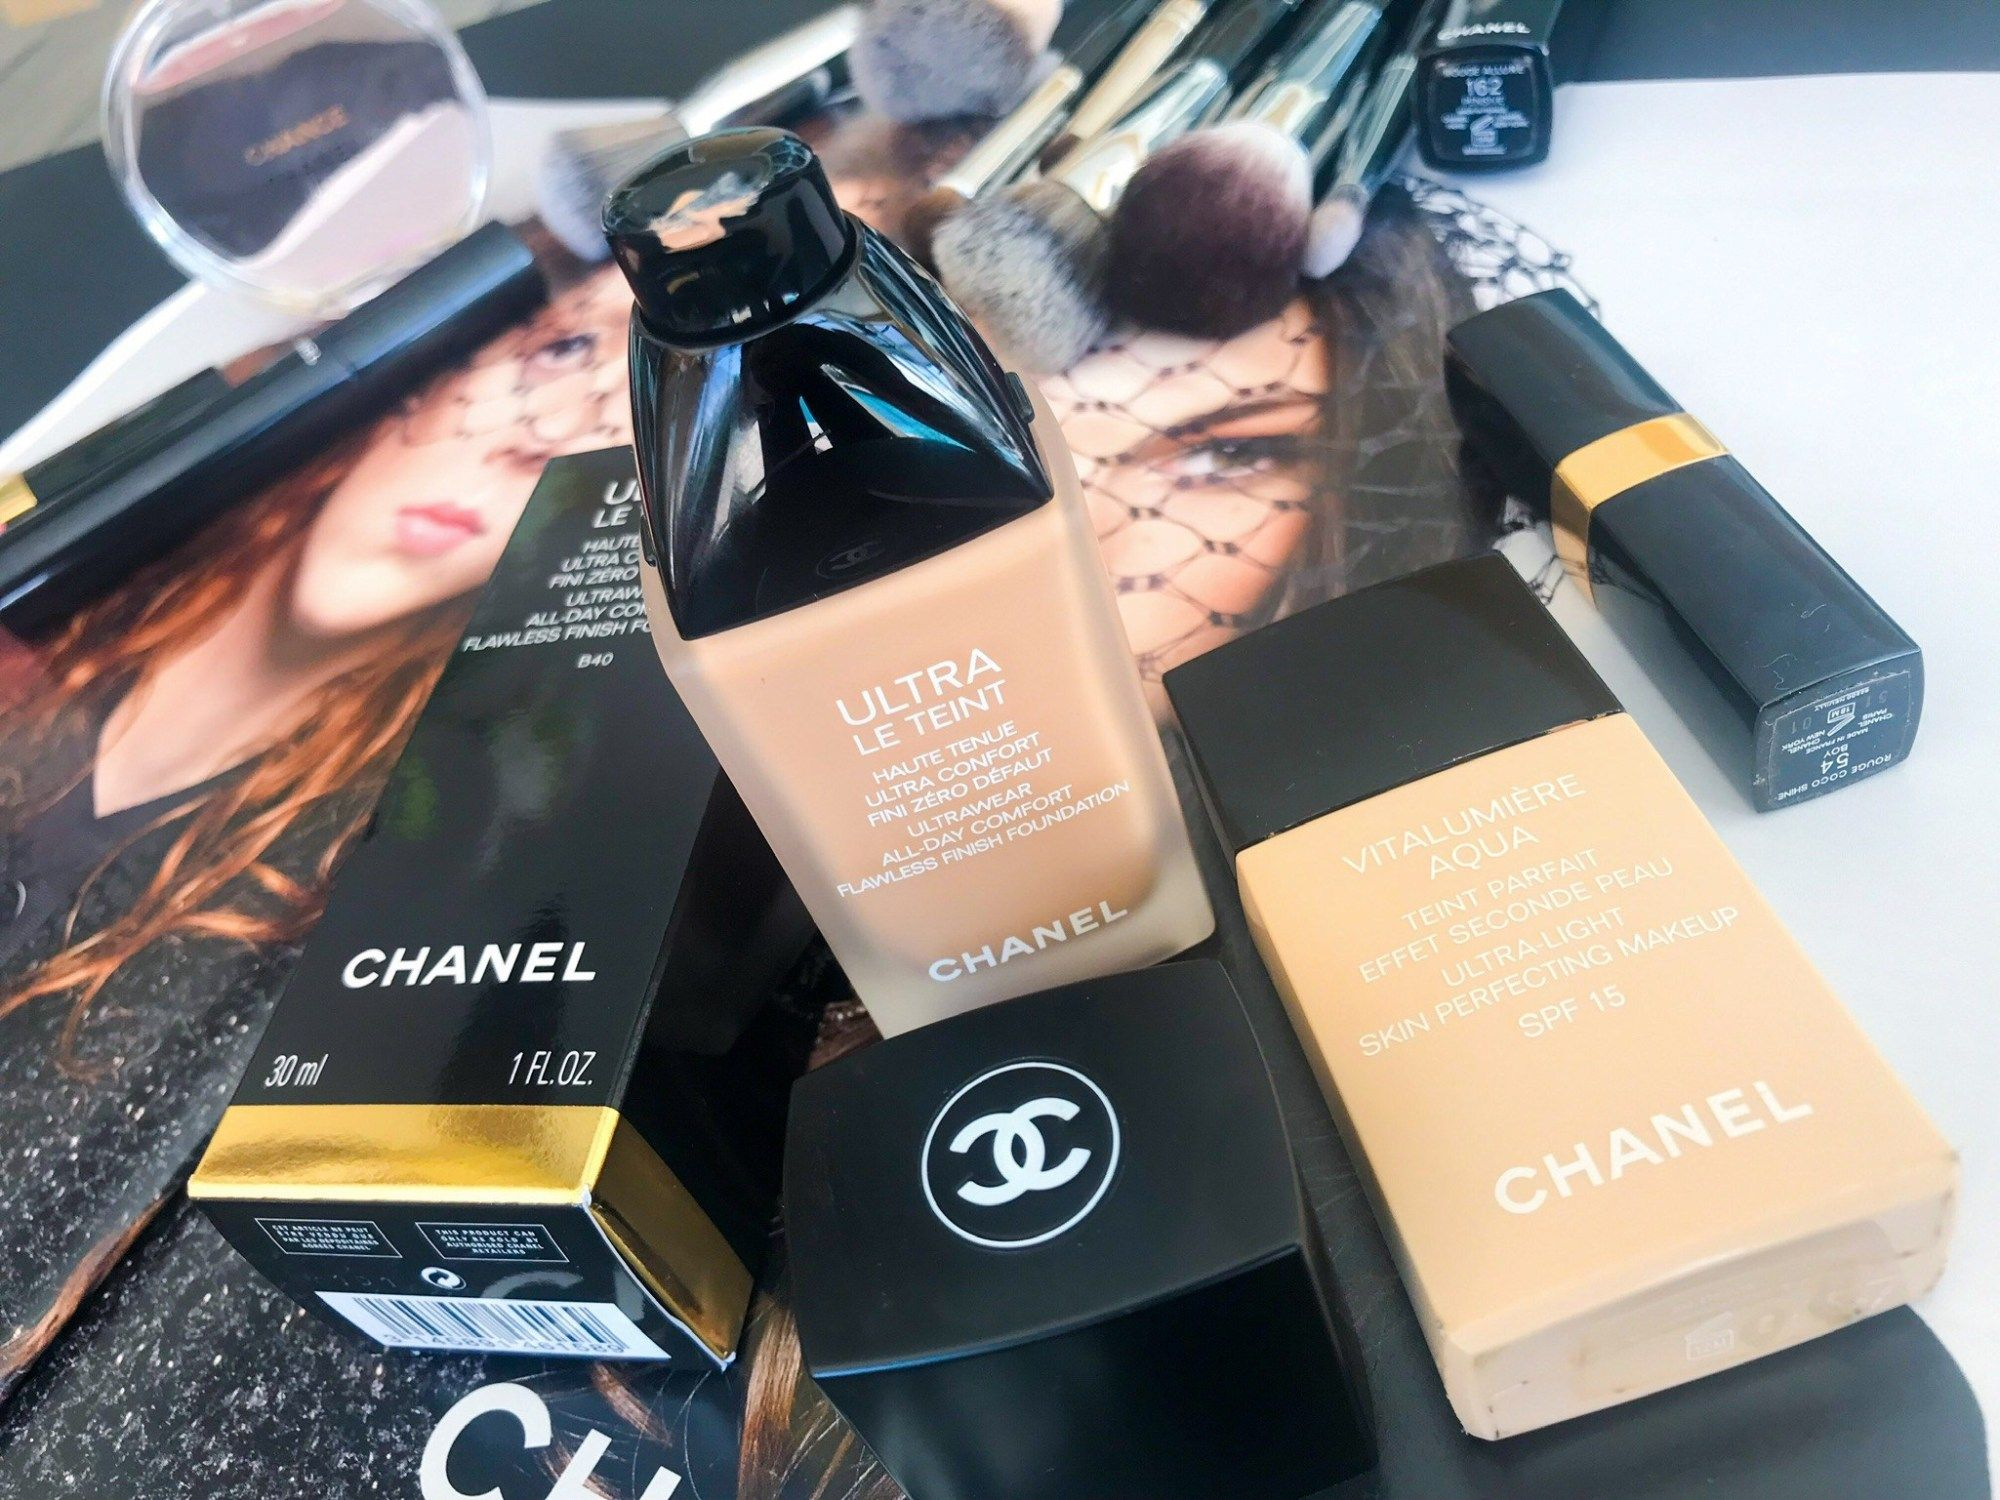 The NEW Chanel Ultra Le Teint AllDay Comfort Foundation